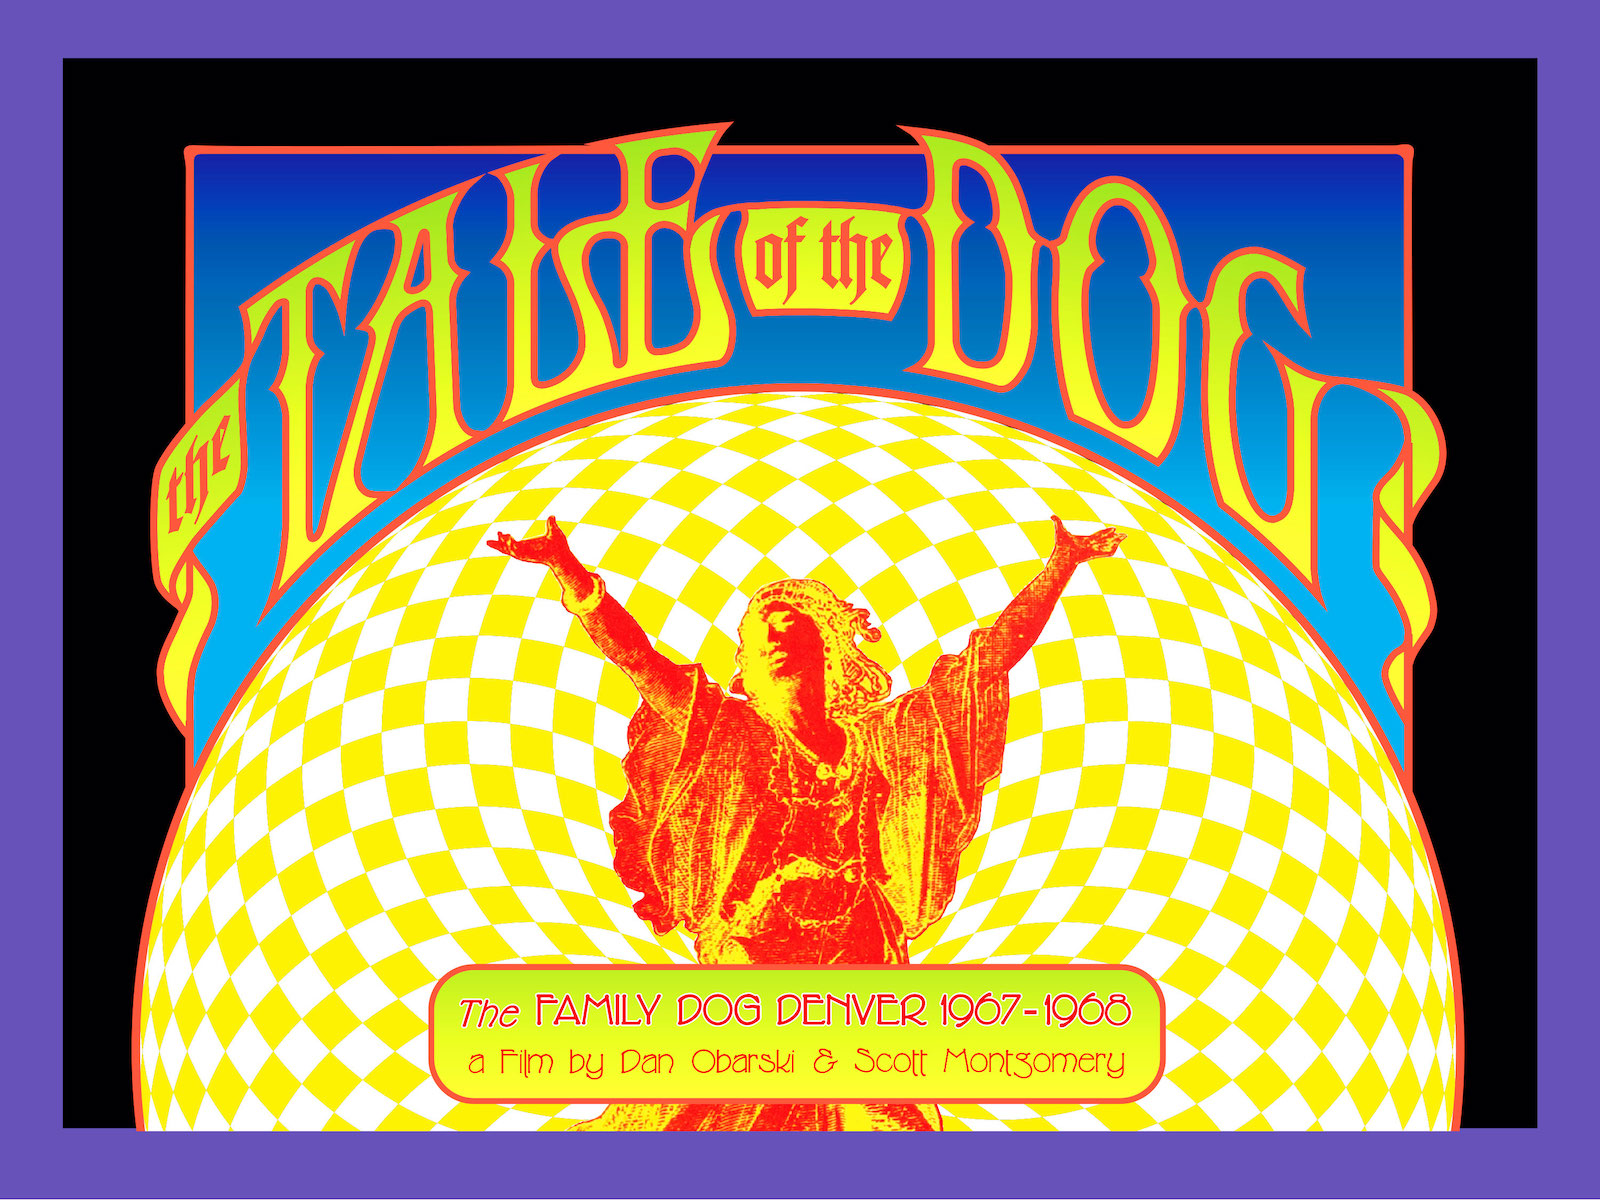 THE TALE OF THE DOG: DENVER'S GREATEST MUSIC VENUE